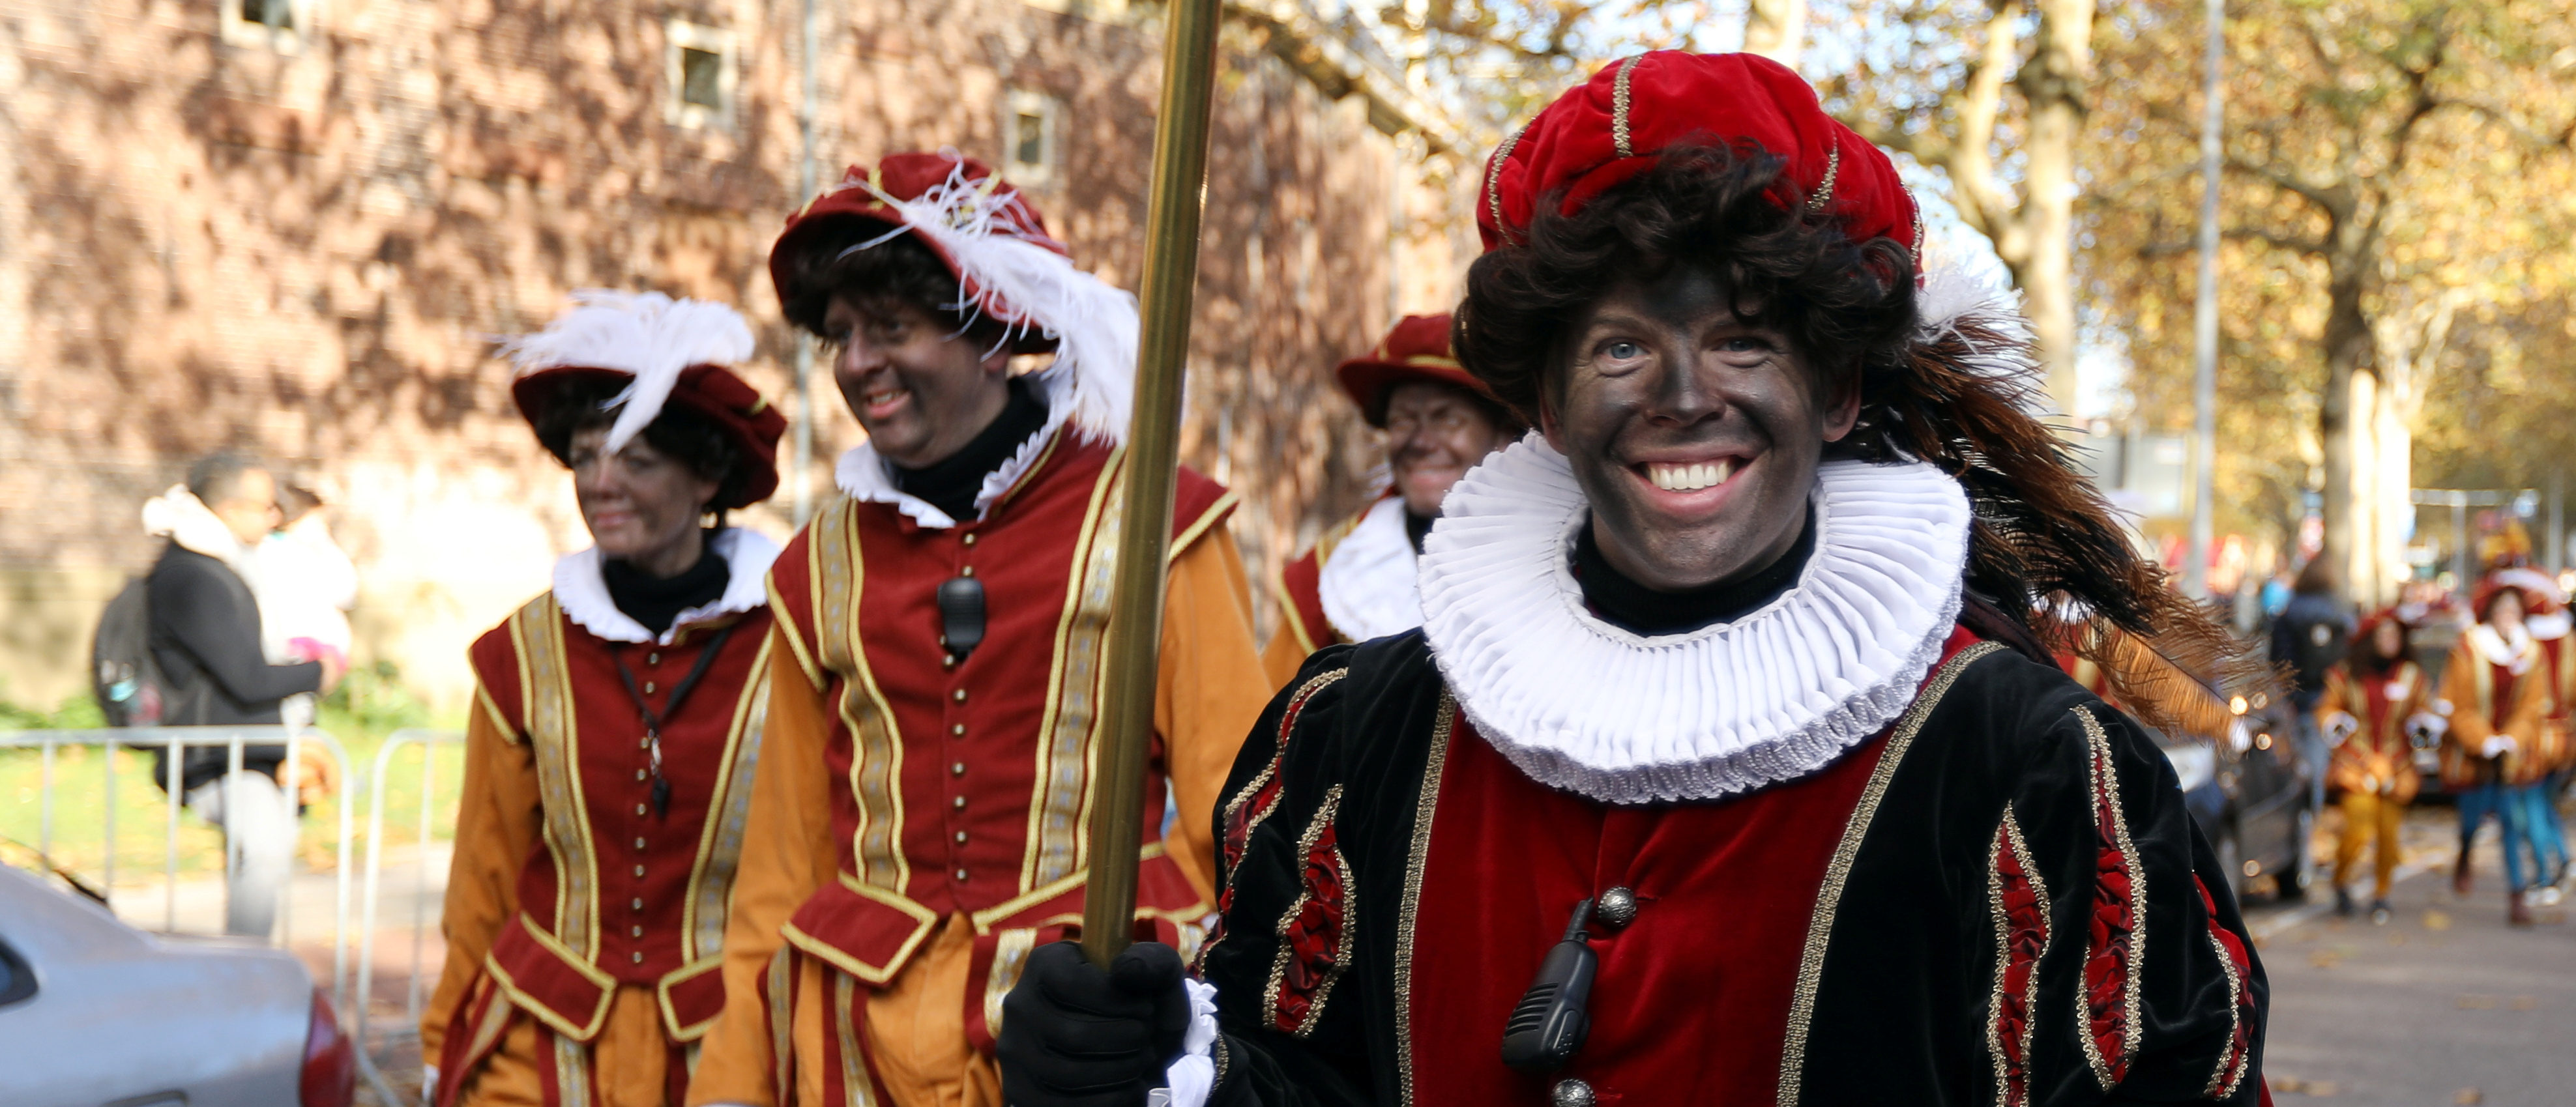 """""""Zwarte Piet"""" (Black Pete), who are a Saint Nicholas' assistants are seen during a traditional parade in Amsterdam, Netherlands, November 18, 2018. REUTERS/Eva Plevier - RC1169DA3850"""